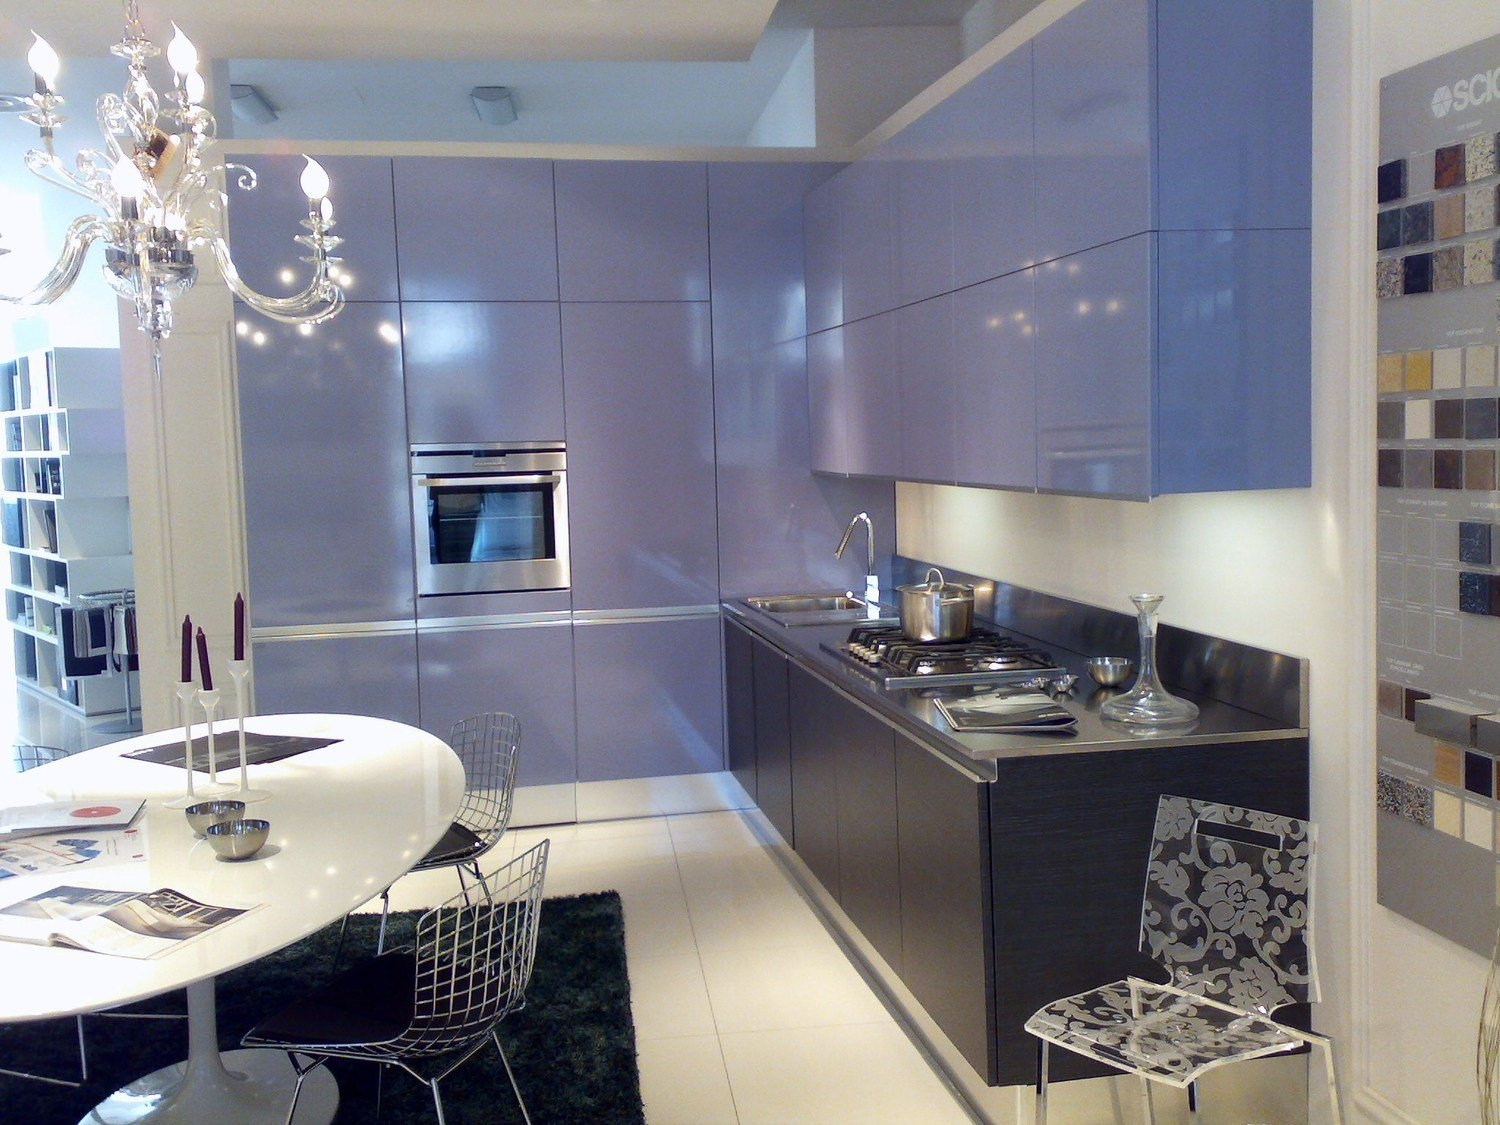 Awesome Prezzi Cucine Scic Ideas - Home Design - joygree.info